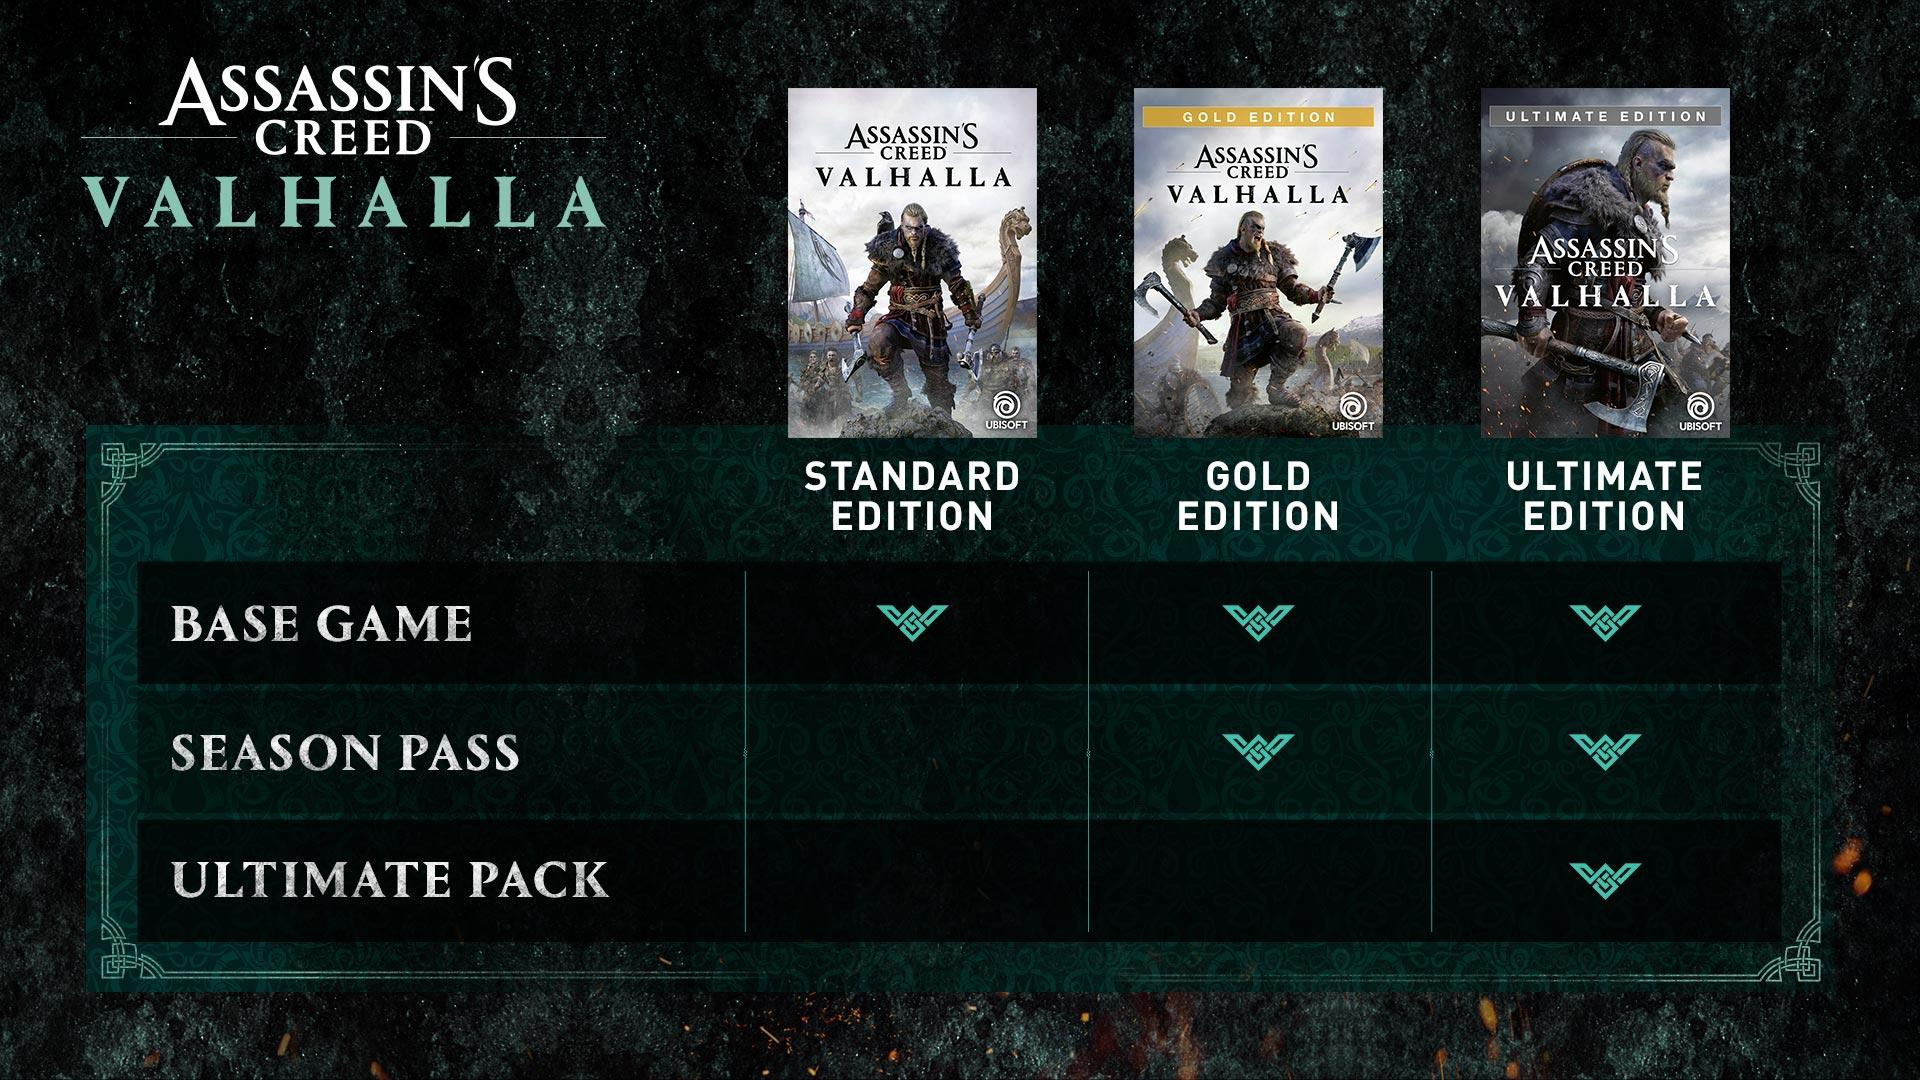 Assassins Creed Valhalla Editions 2